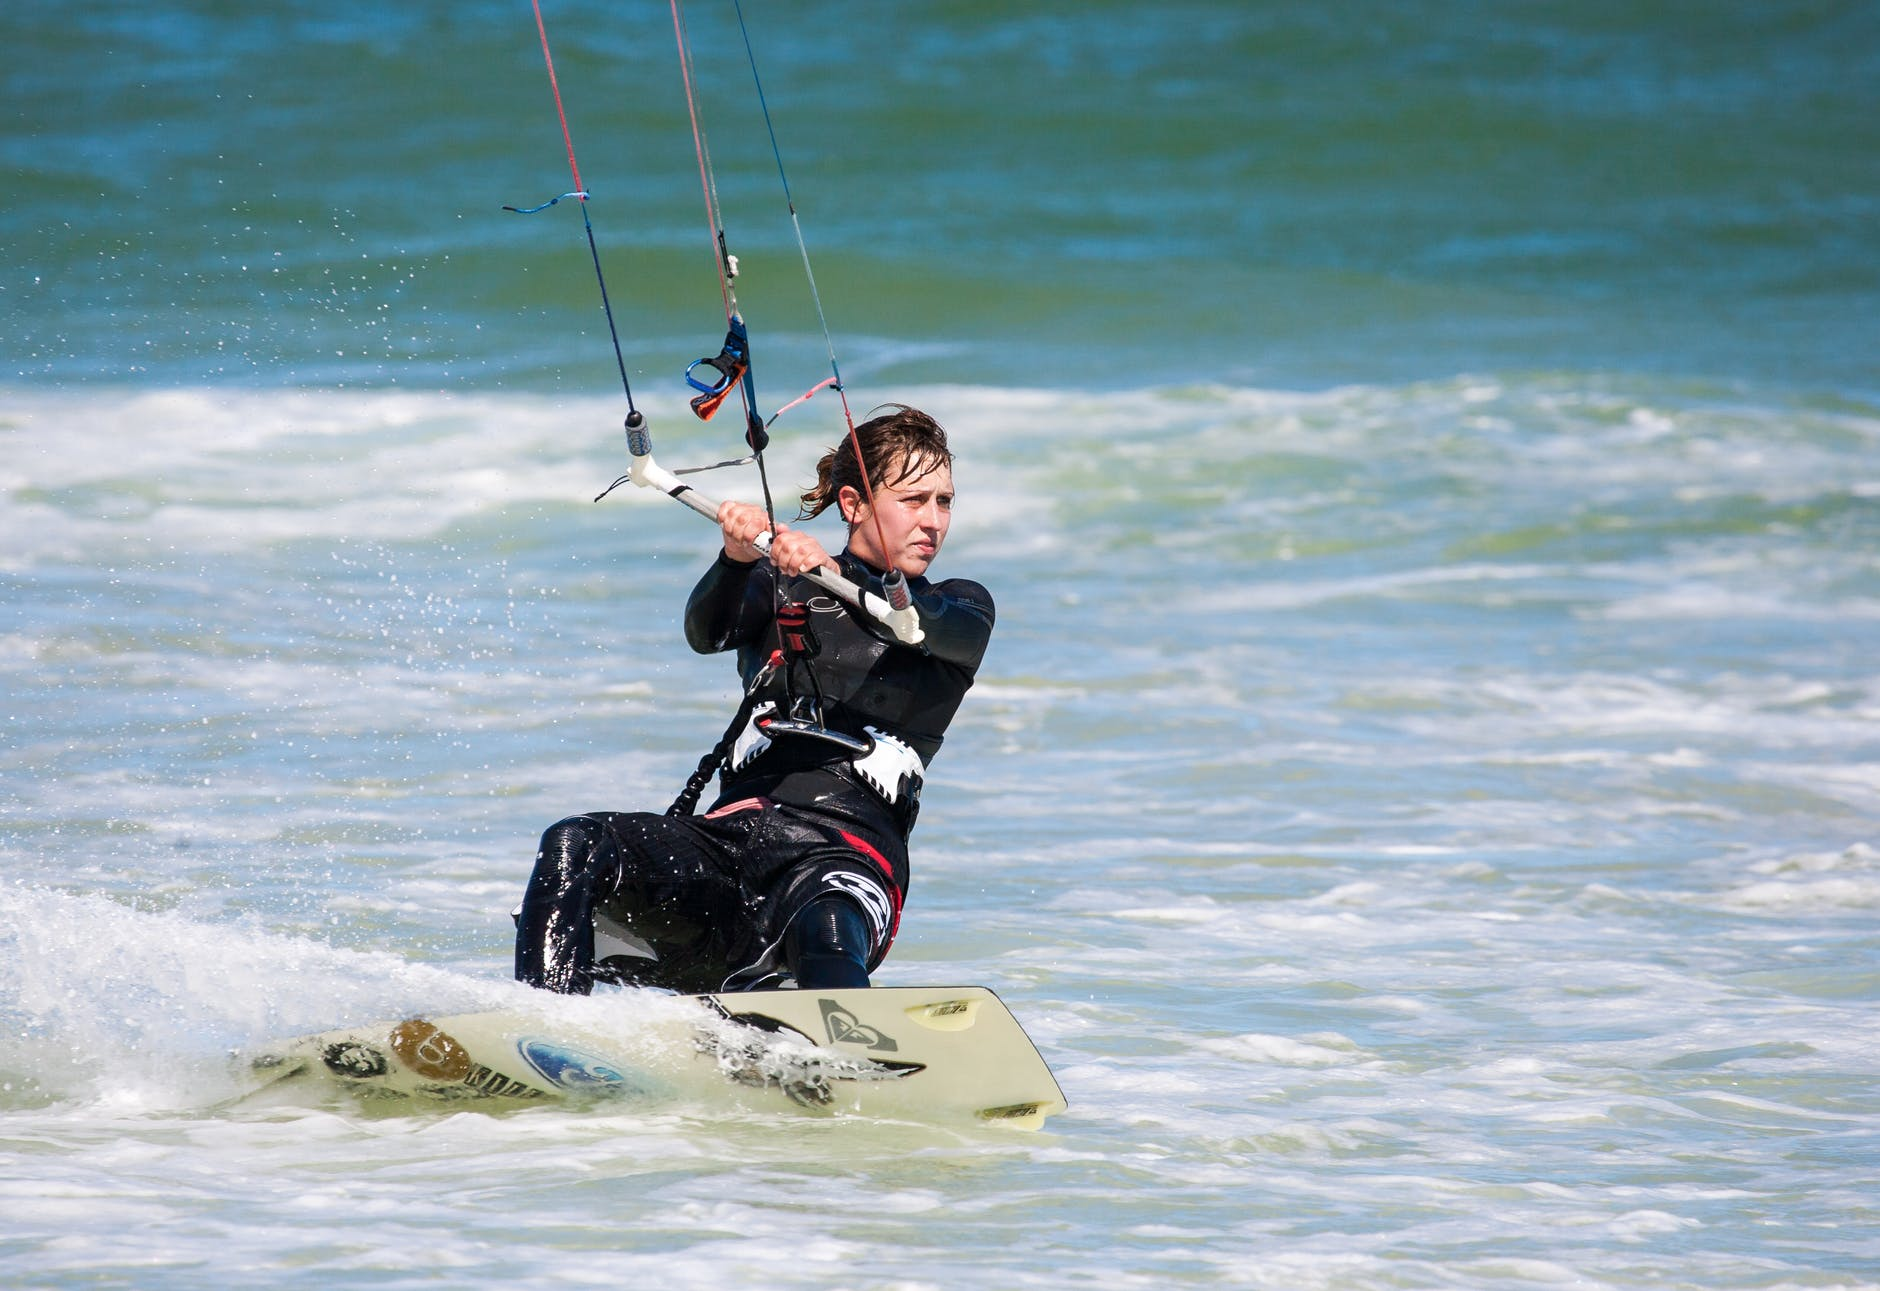 A woman kite surfer looking for her next big wave